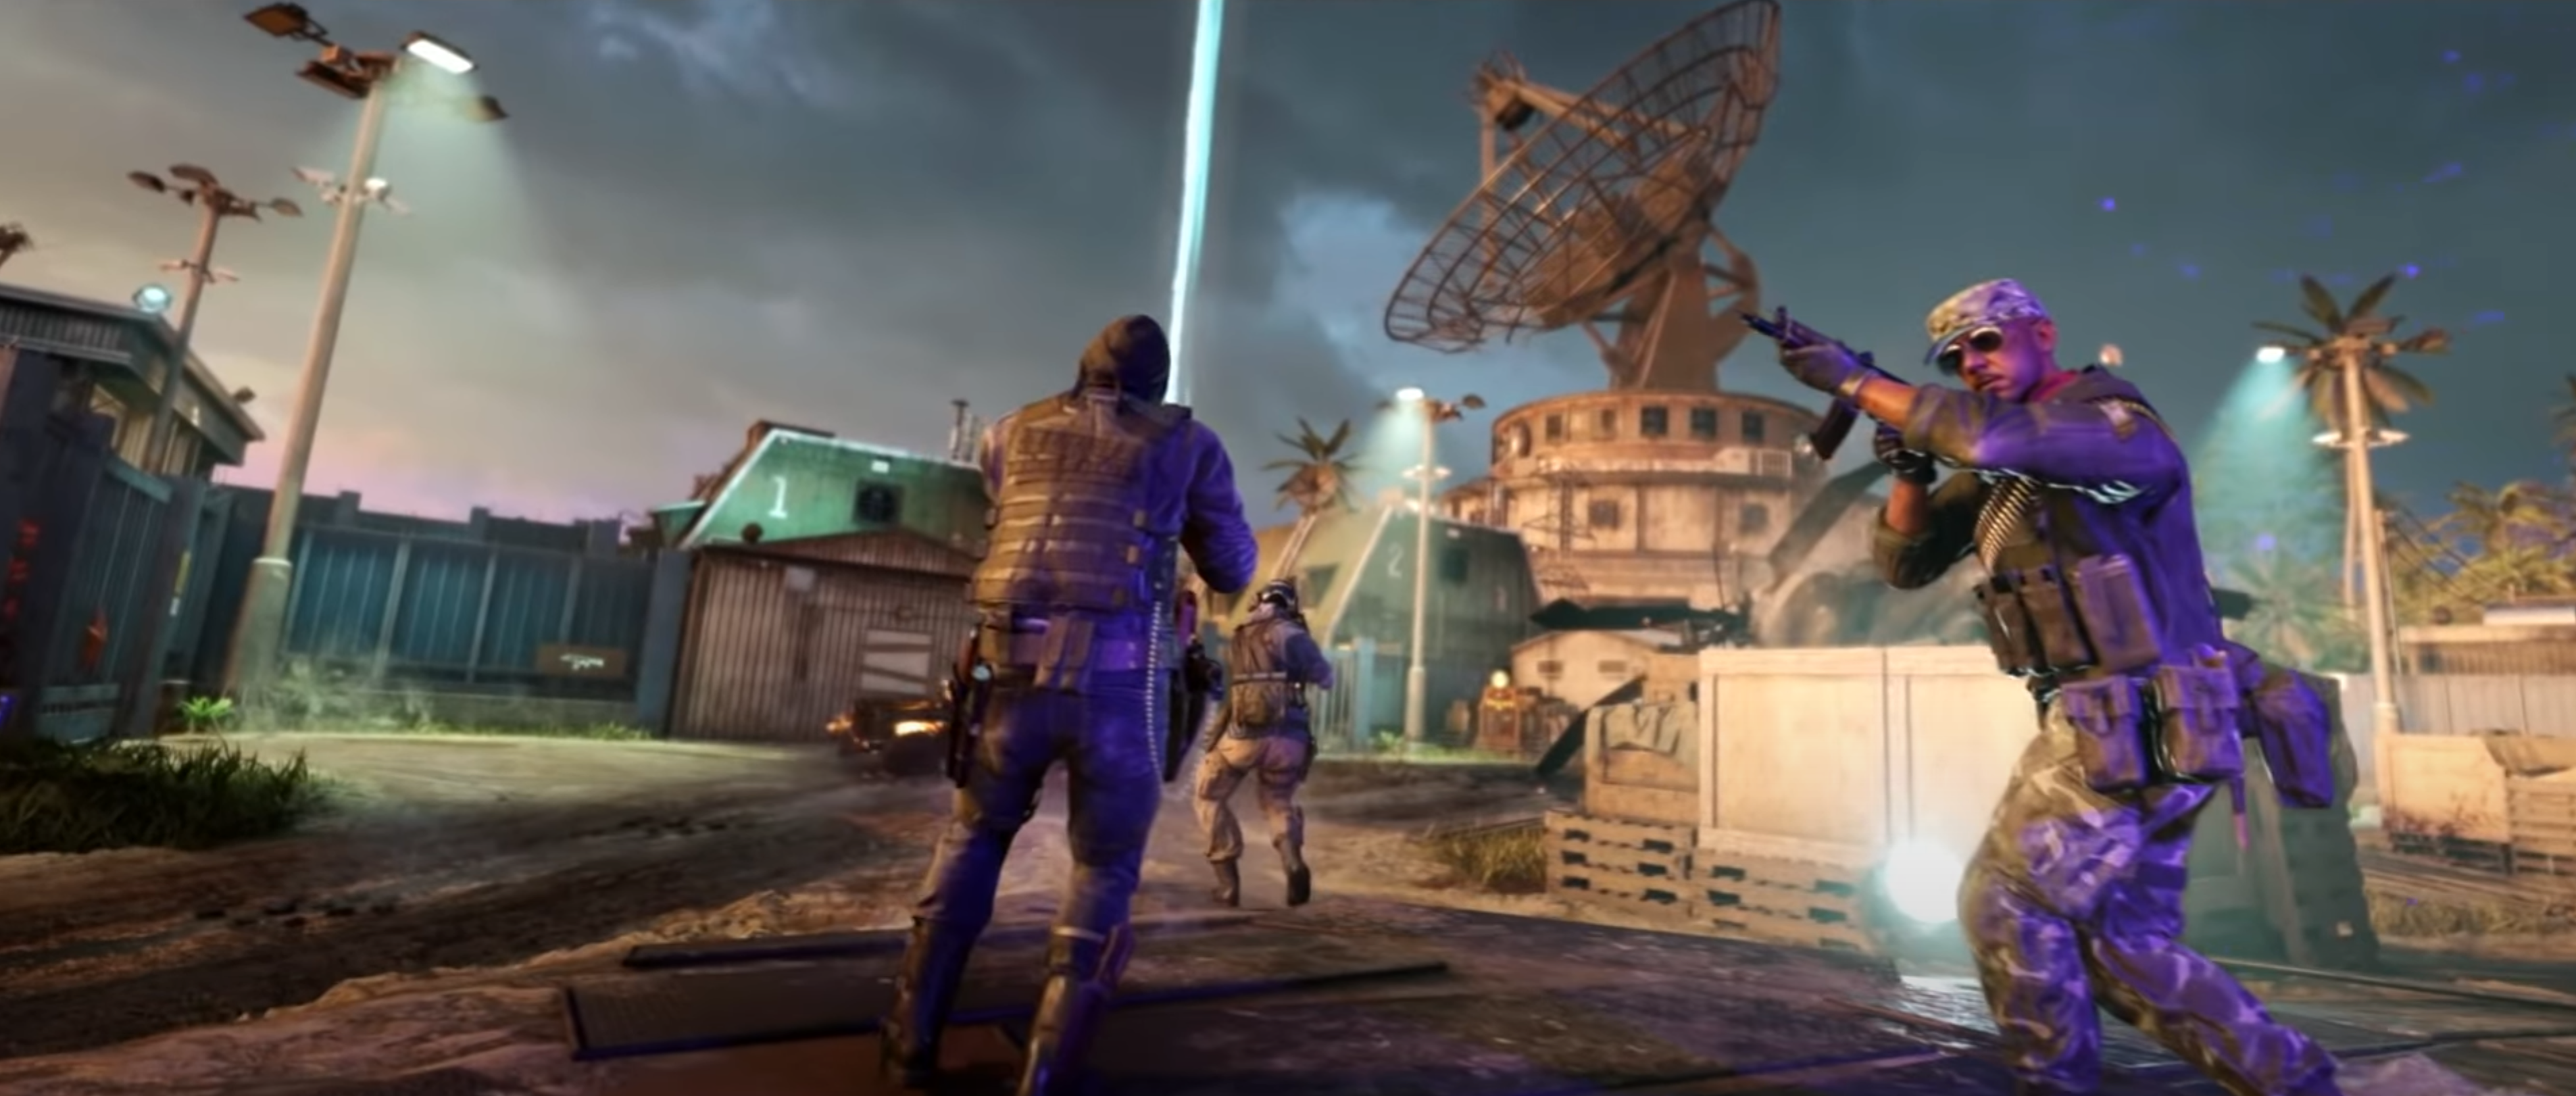 Three players explore the Firebase Z Zombies map from Call of Duty: Black Ops Cold War